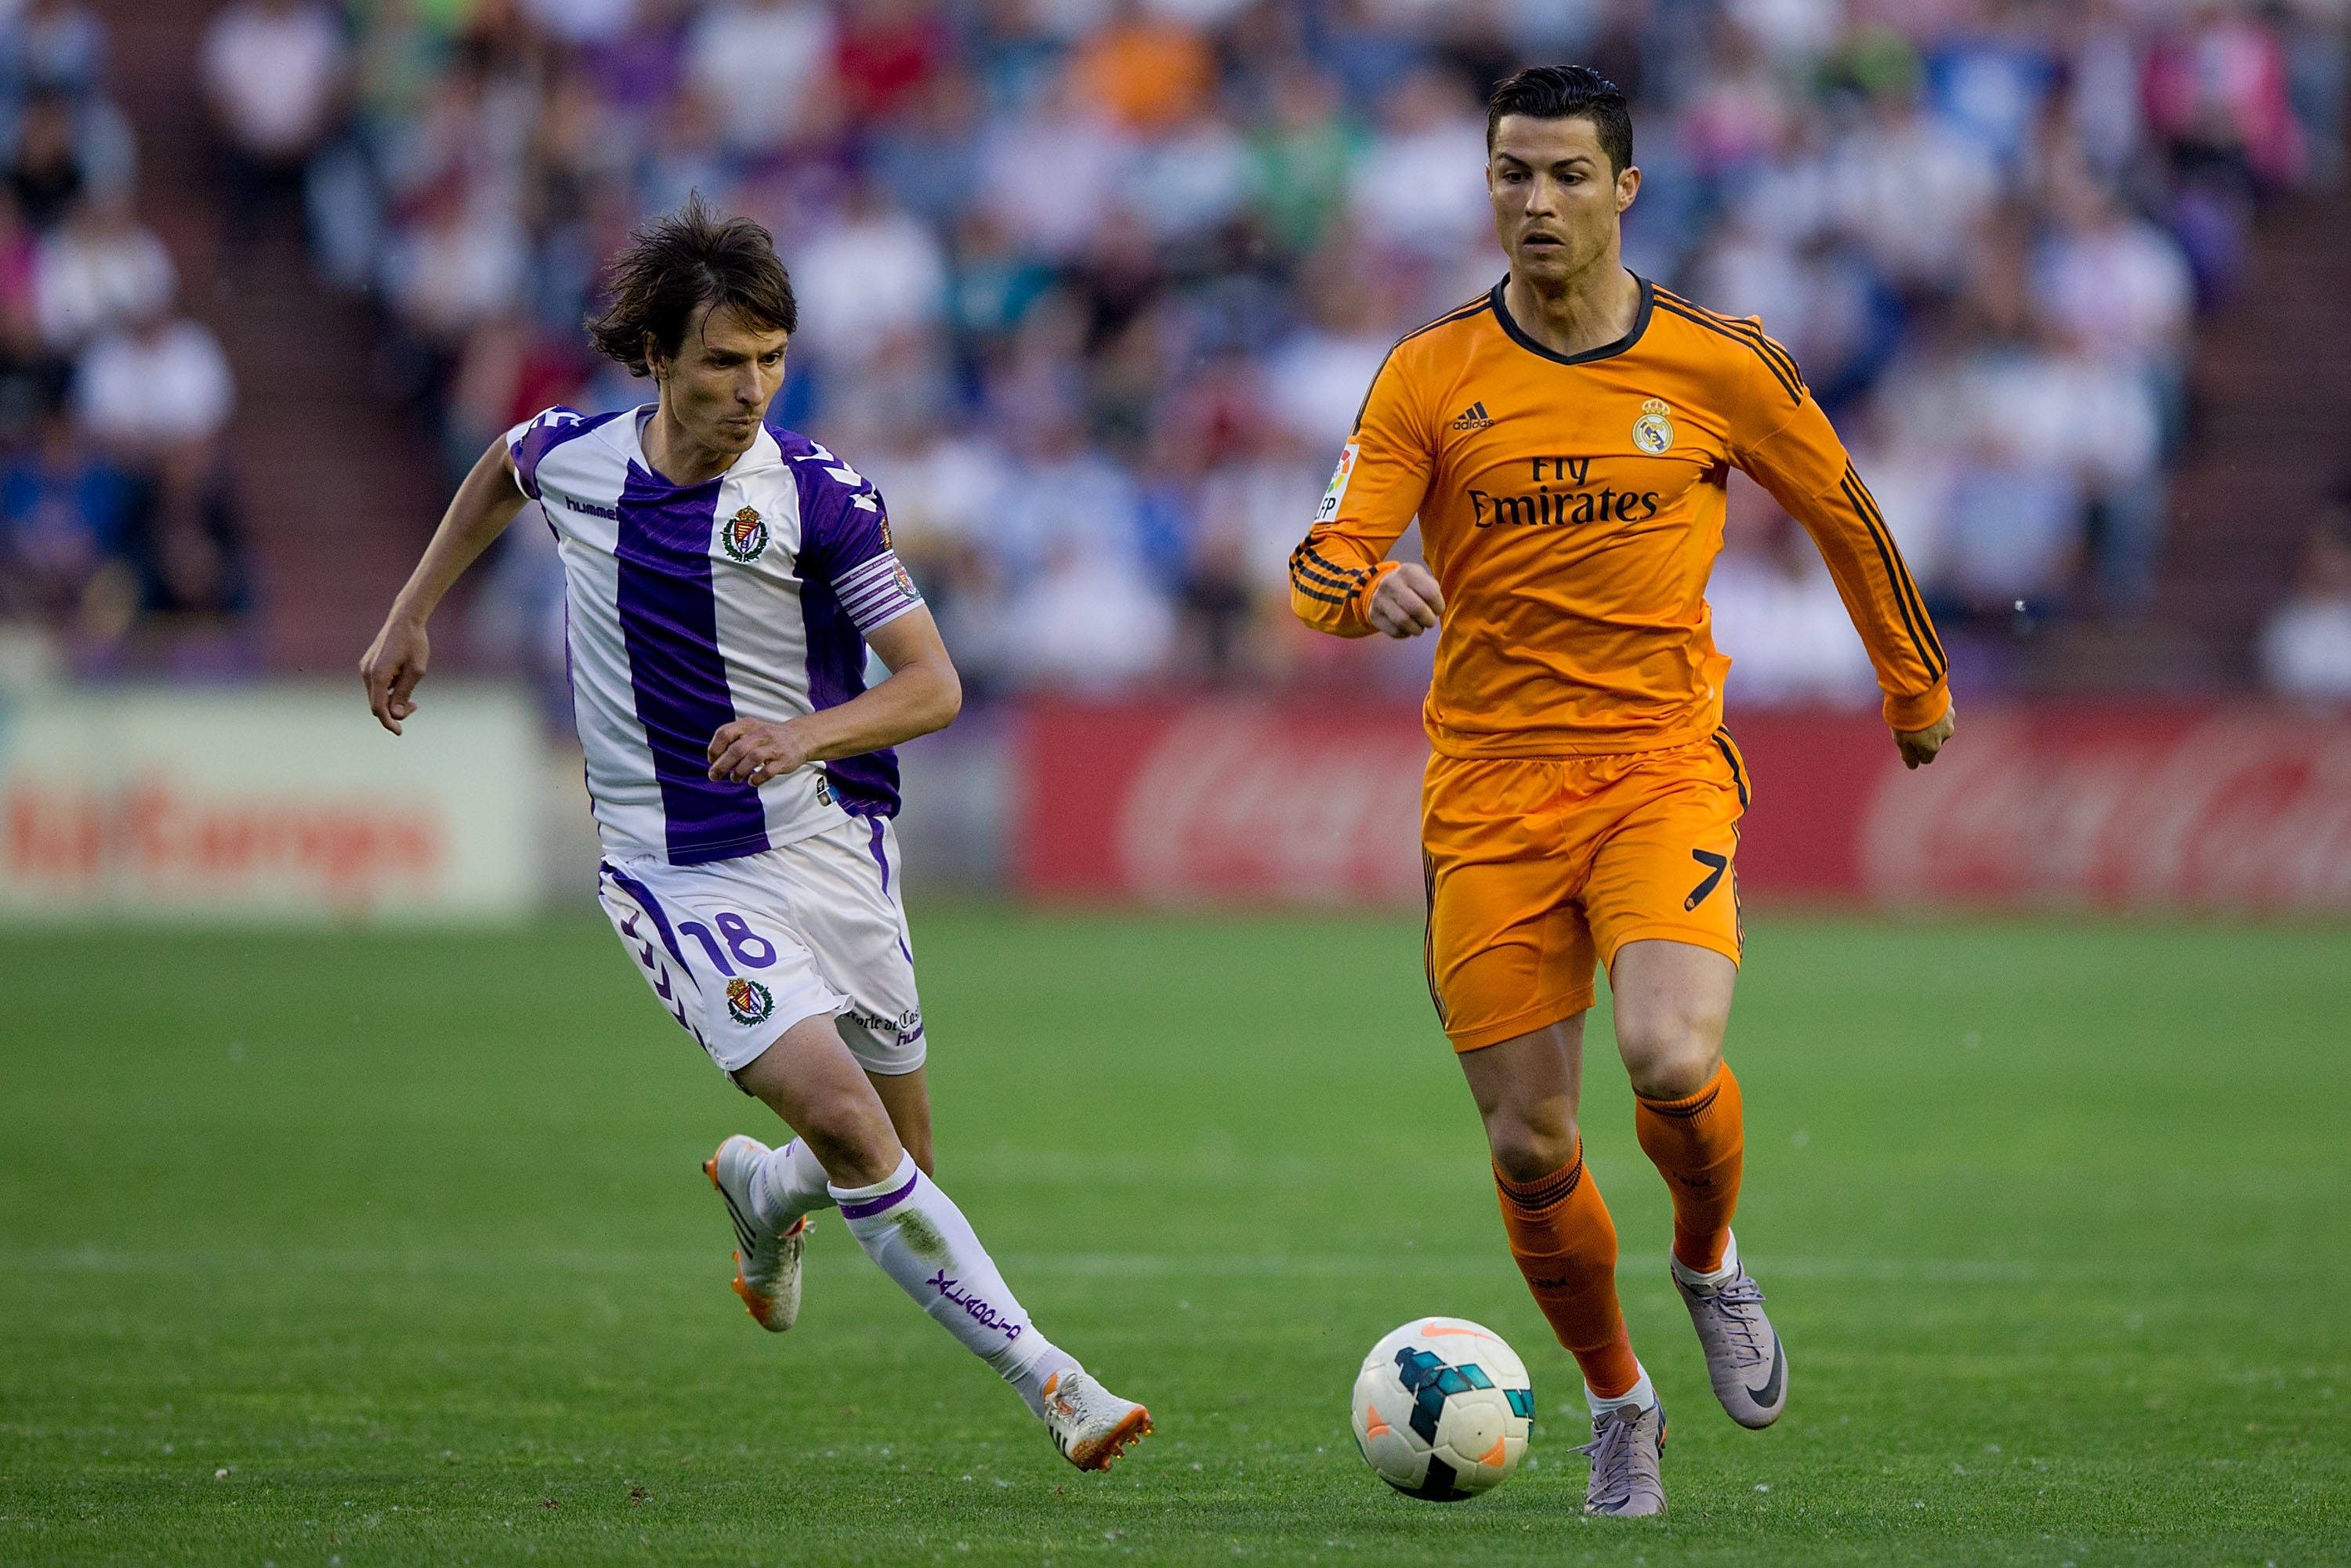 Cristiano Ronaldo, right, of Real Madrid CF competes for the ball with Alvaro Rubio of Real Valladolid CF during a match on May 7 in Valladolid, Spain. (Gonzalo Arroyo Moreno/Getty Images)